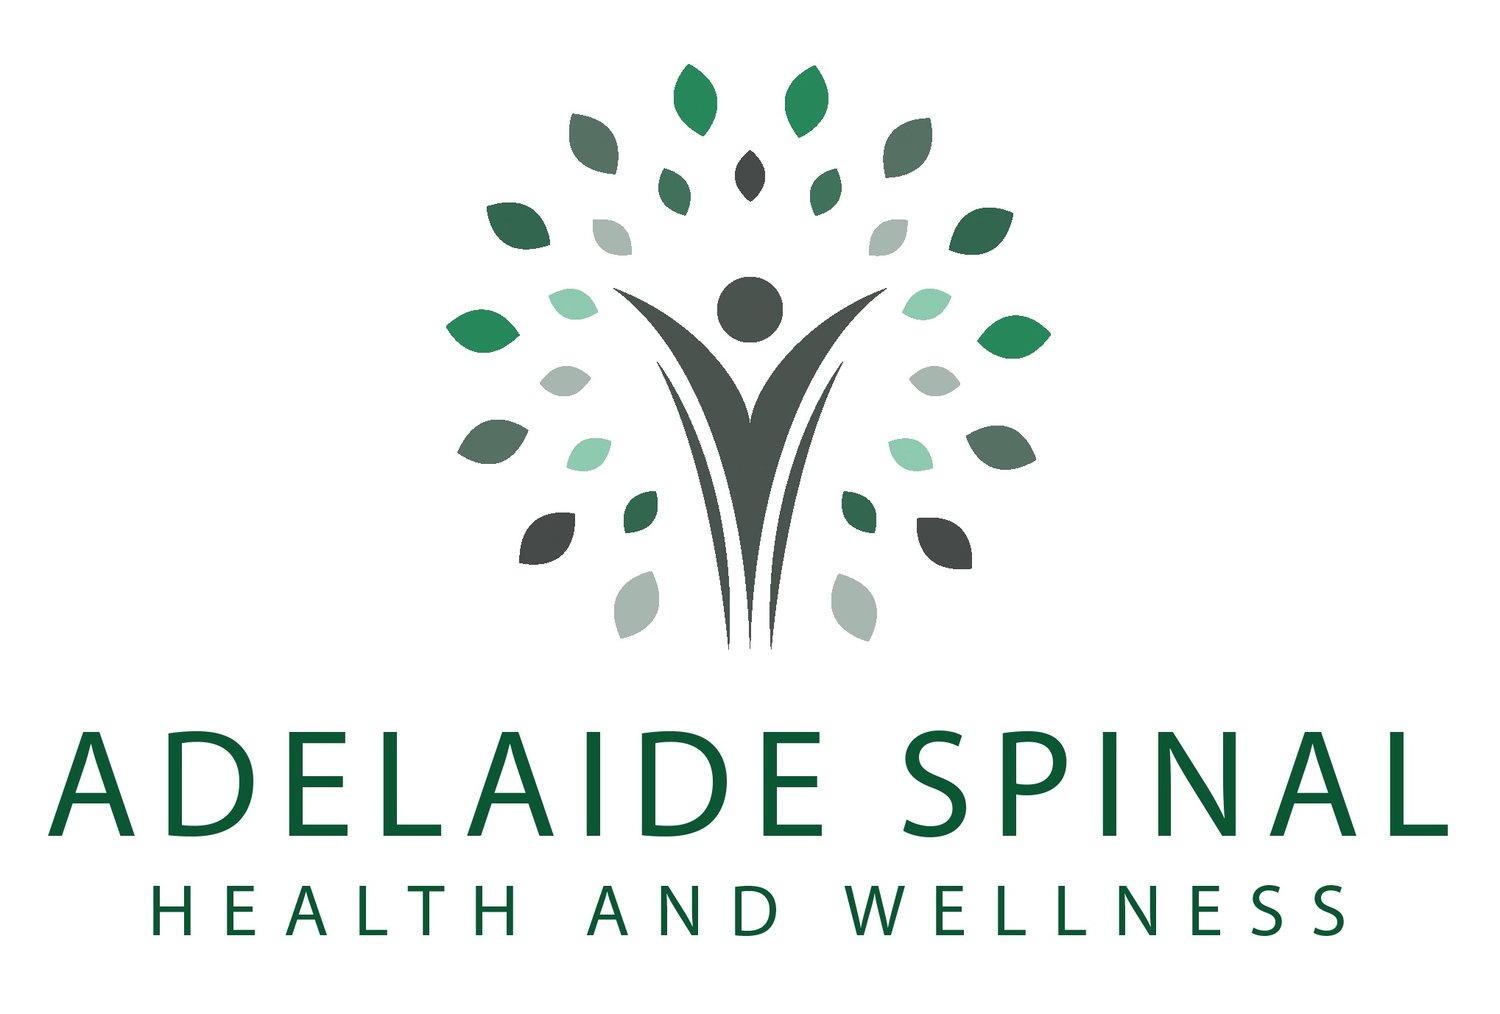 Adelaide Spinal Health and Wellness